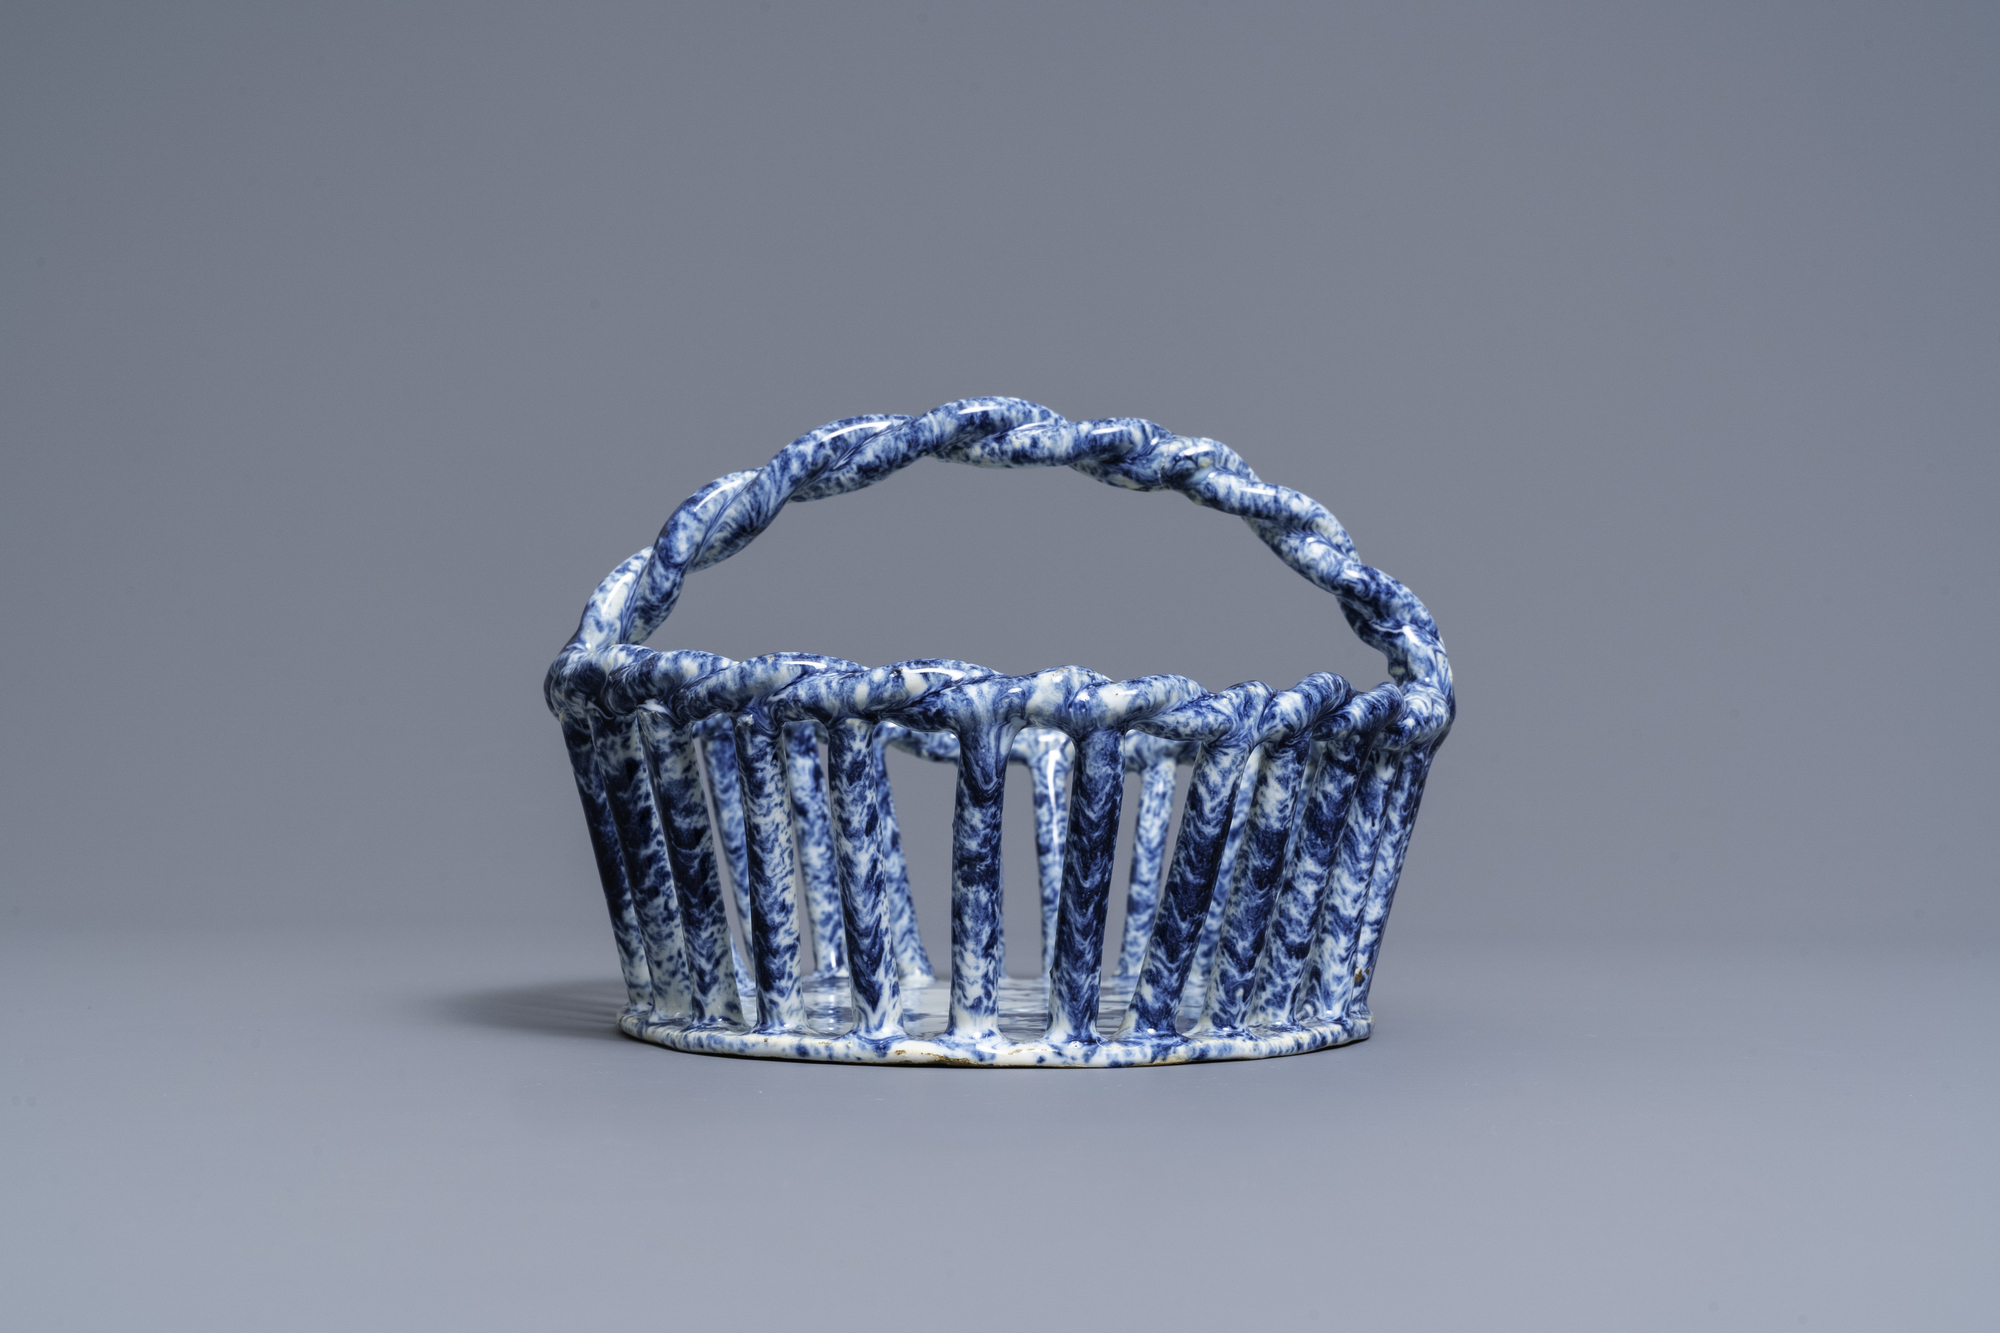 A rare Dutch Delft blue and white reticulated basket, 18th C. - Image 3 of 7